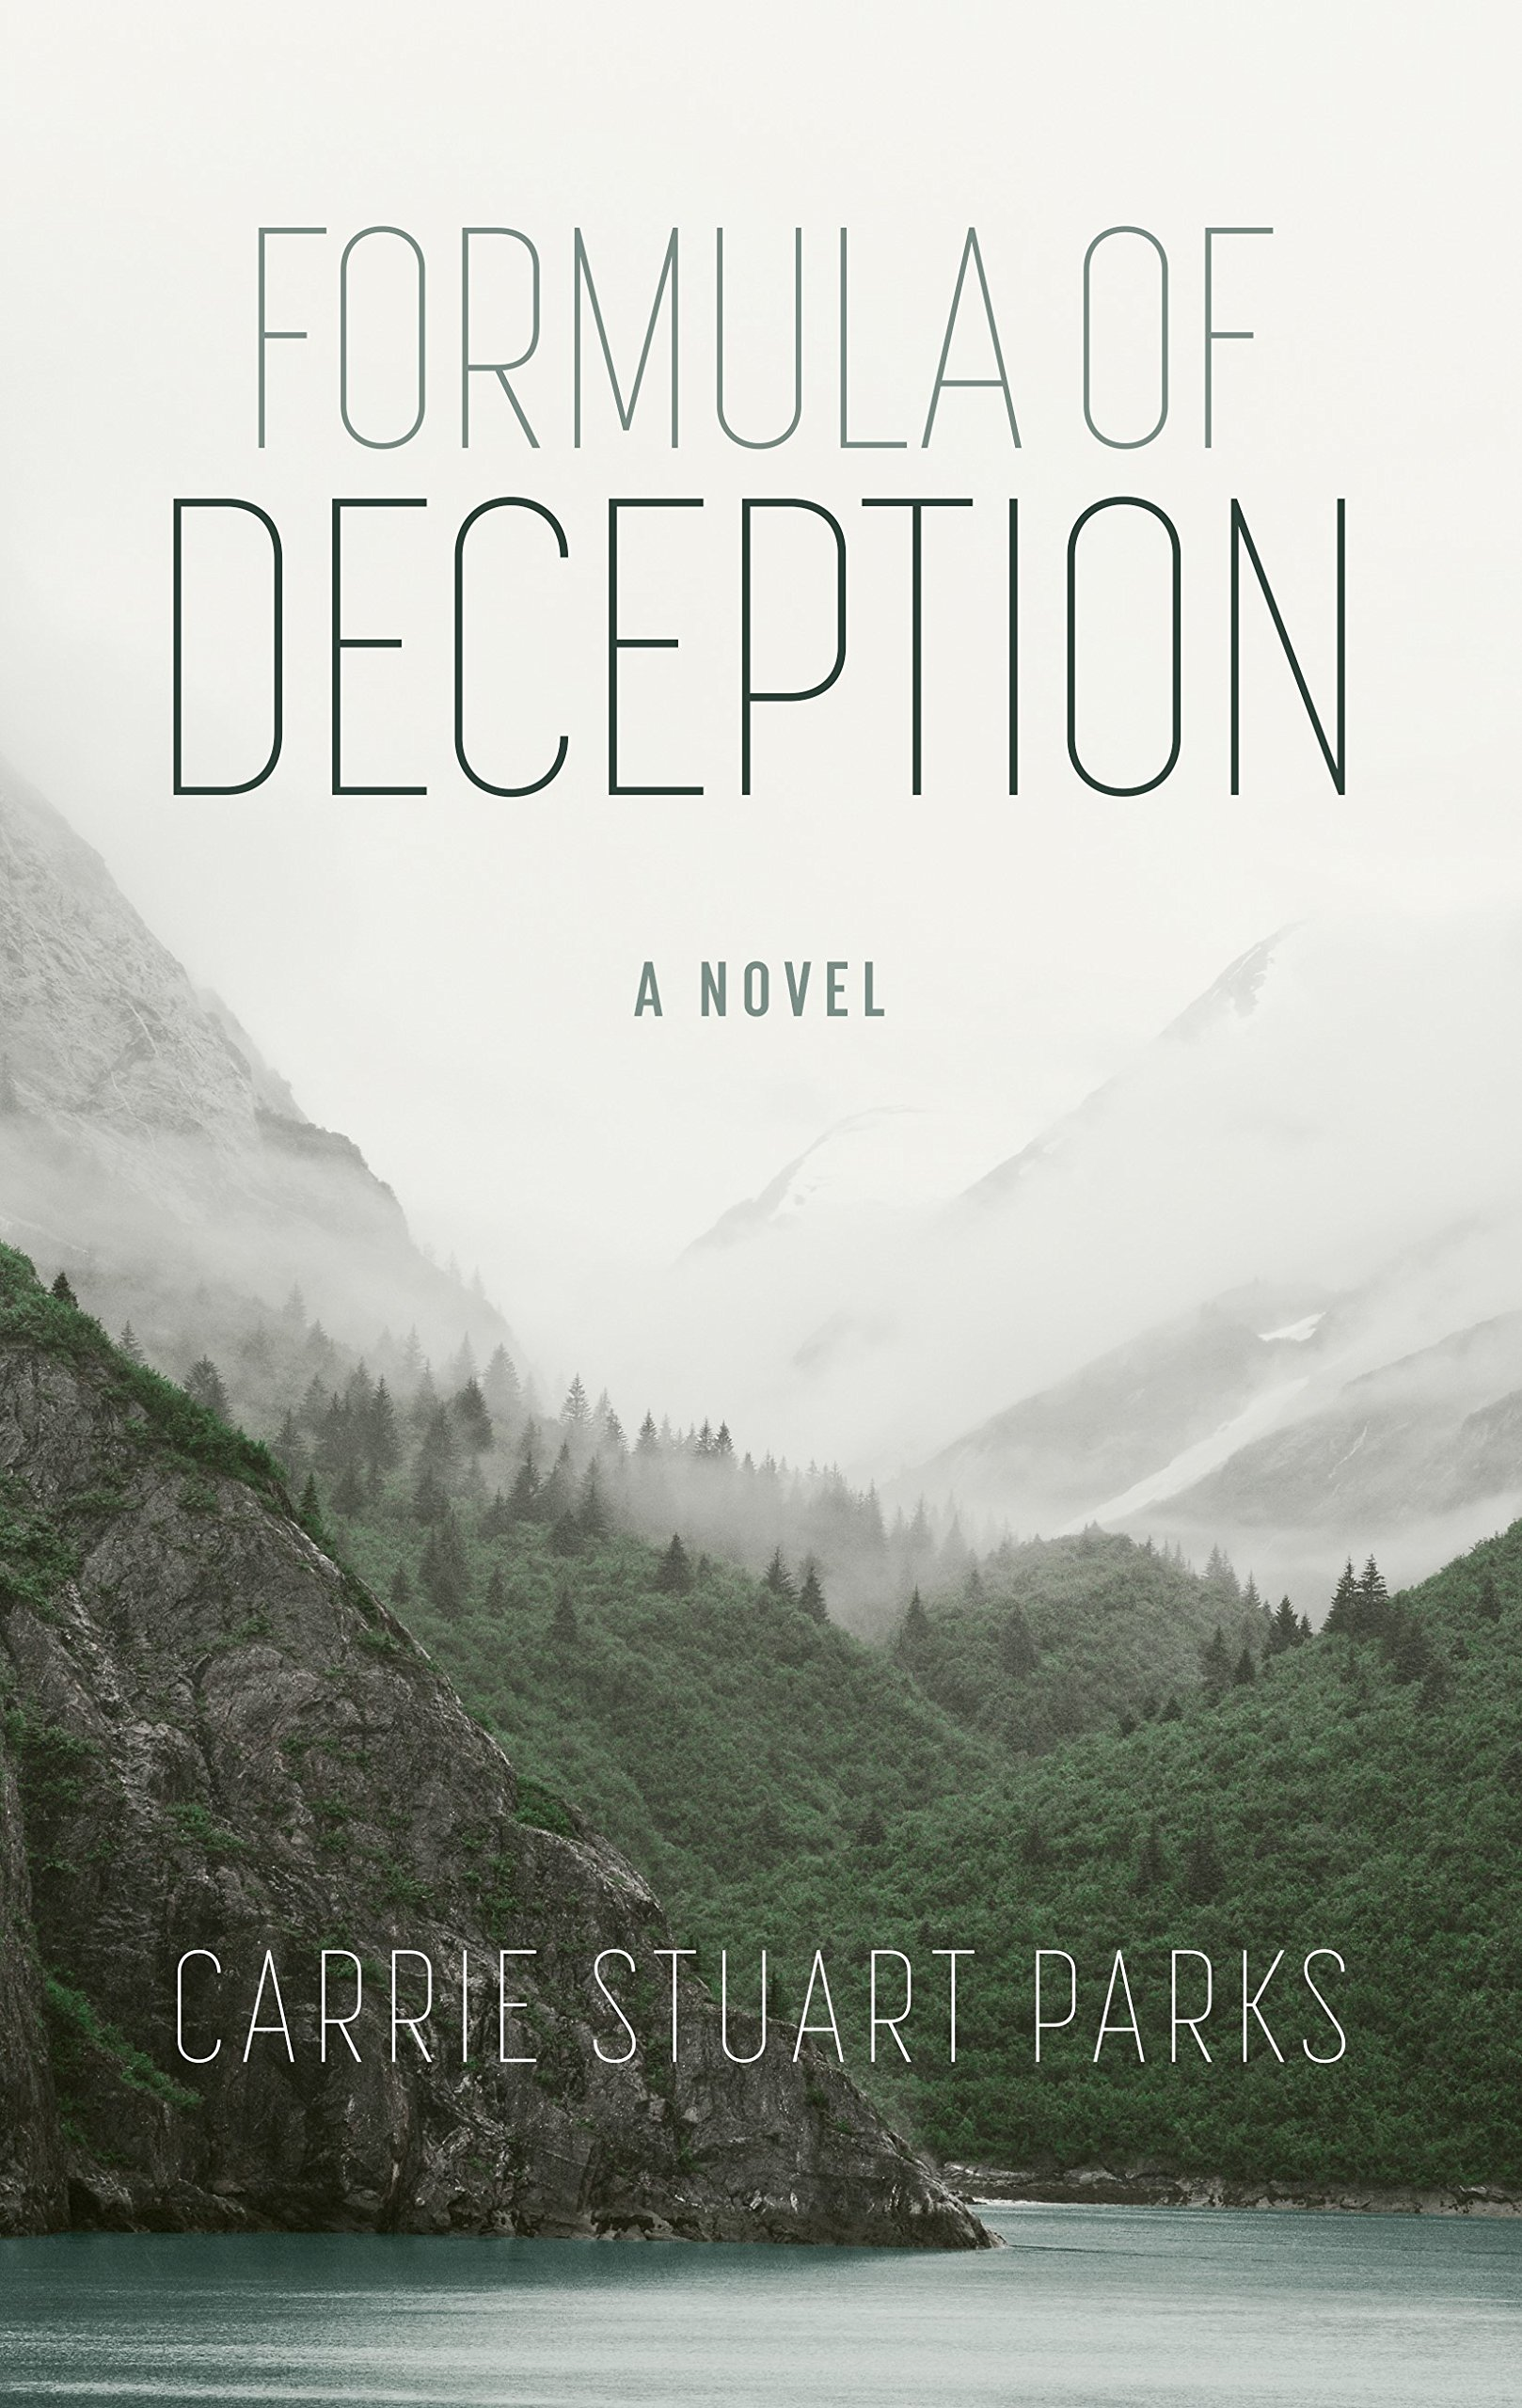 Download Formula of Deception (Thorndike Press Large Print Christian Mystery) ePub fb2 book